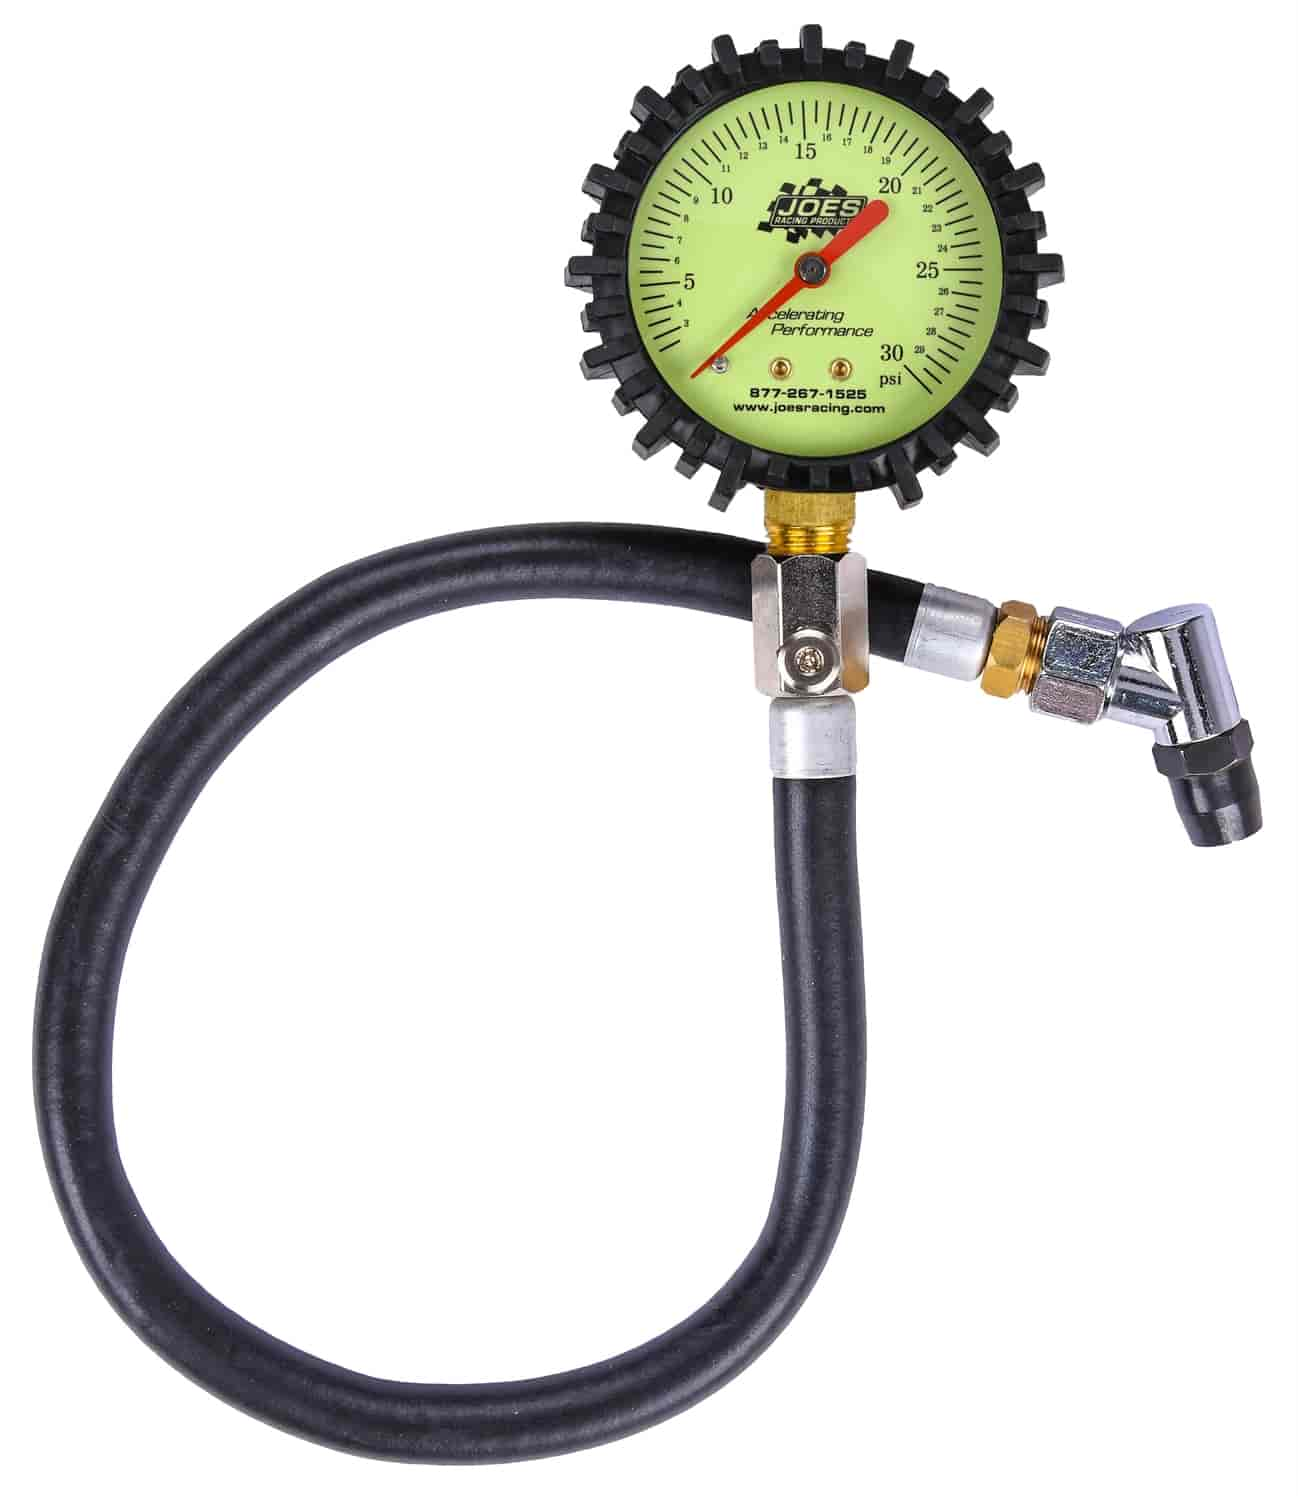 JOES Racing Products 32306 - JOES Racing Products Tire Gauges